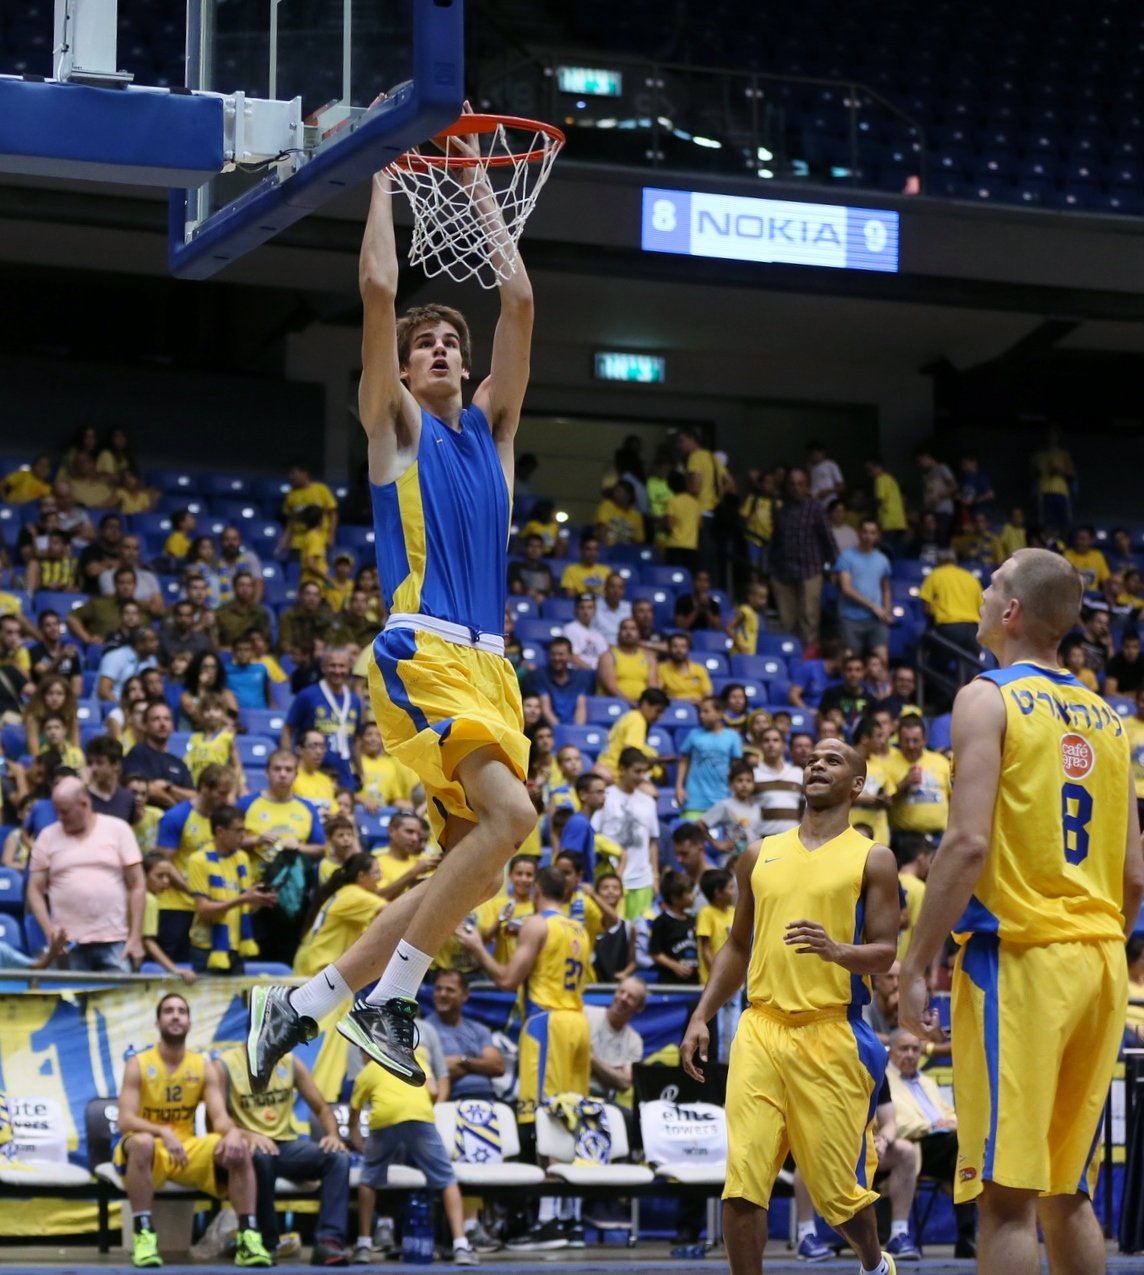 Dragan Bender dreams of dunking one day in the NBA. (Courtesy of Maccabi Tel Aviv BC)